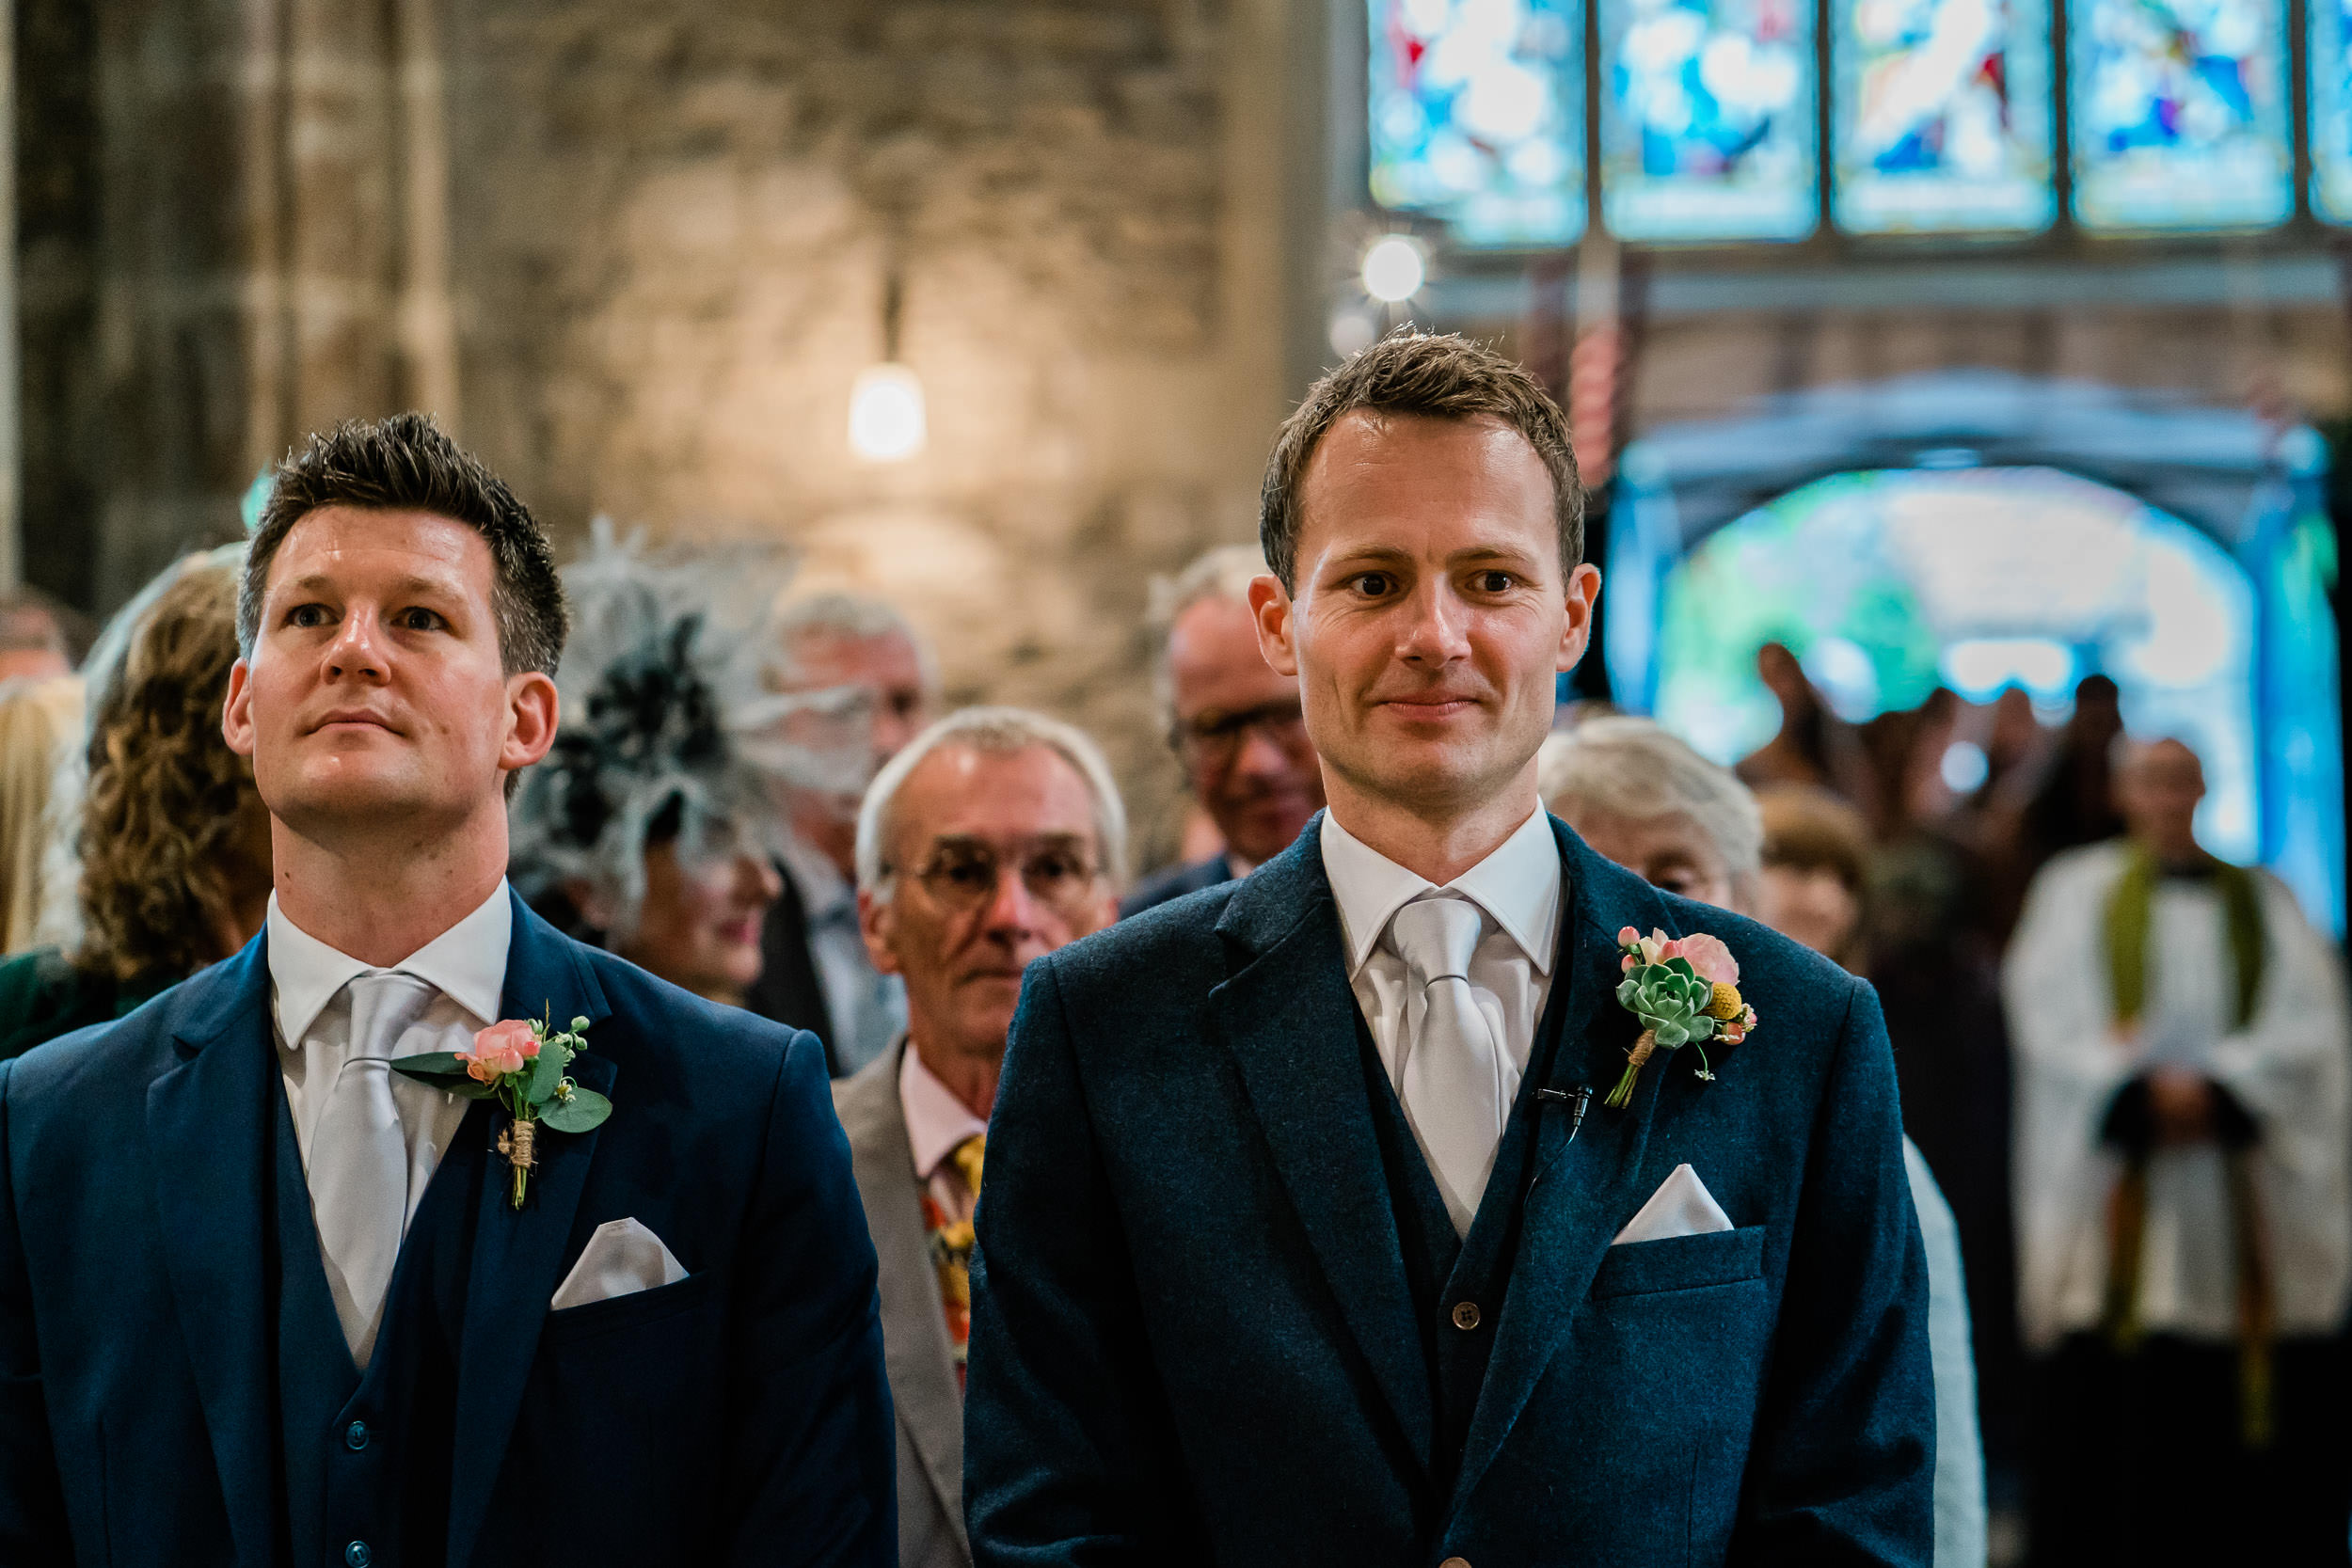 Orchardleigh Estate Wedding - Groom waiting in Church